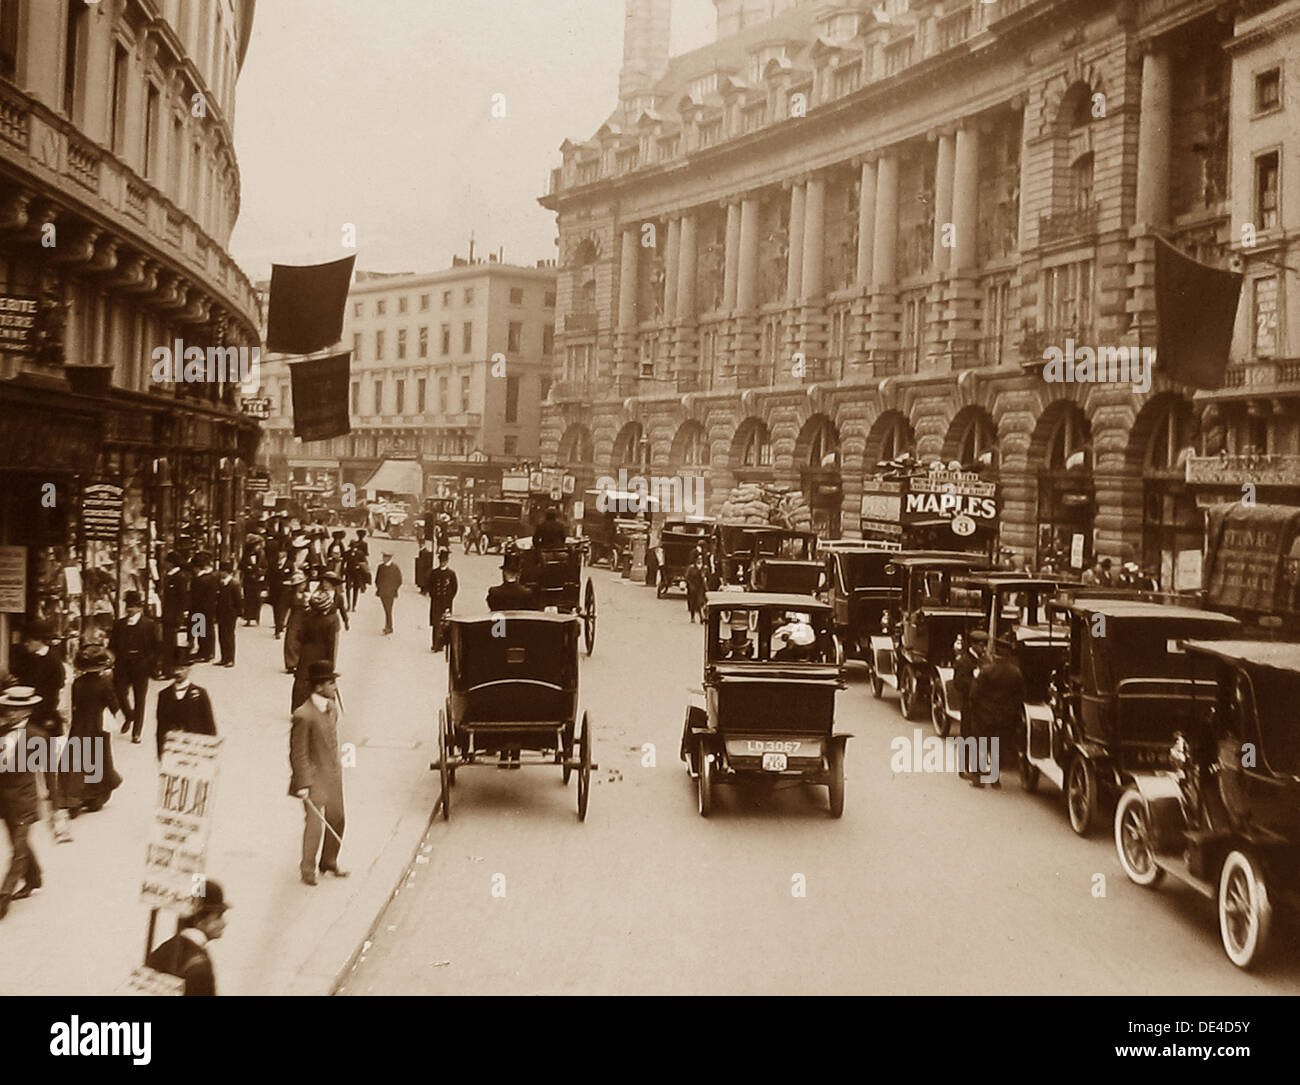 London Regent Street early 1900s - Stock Image